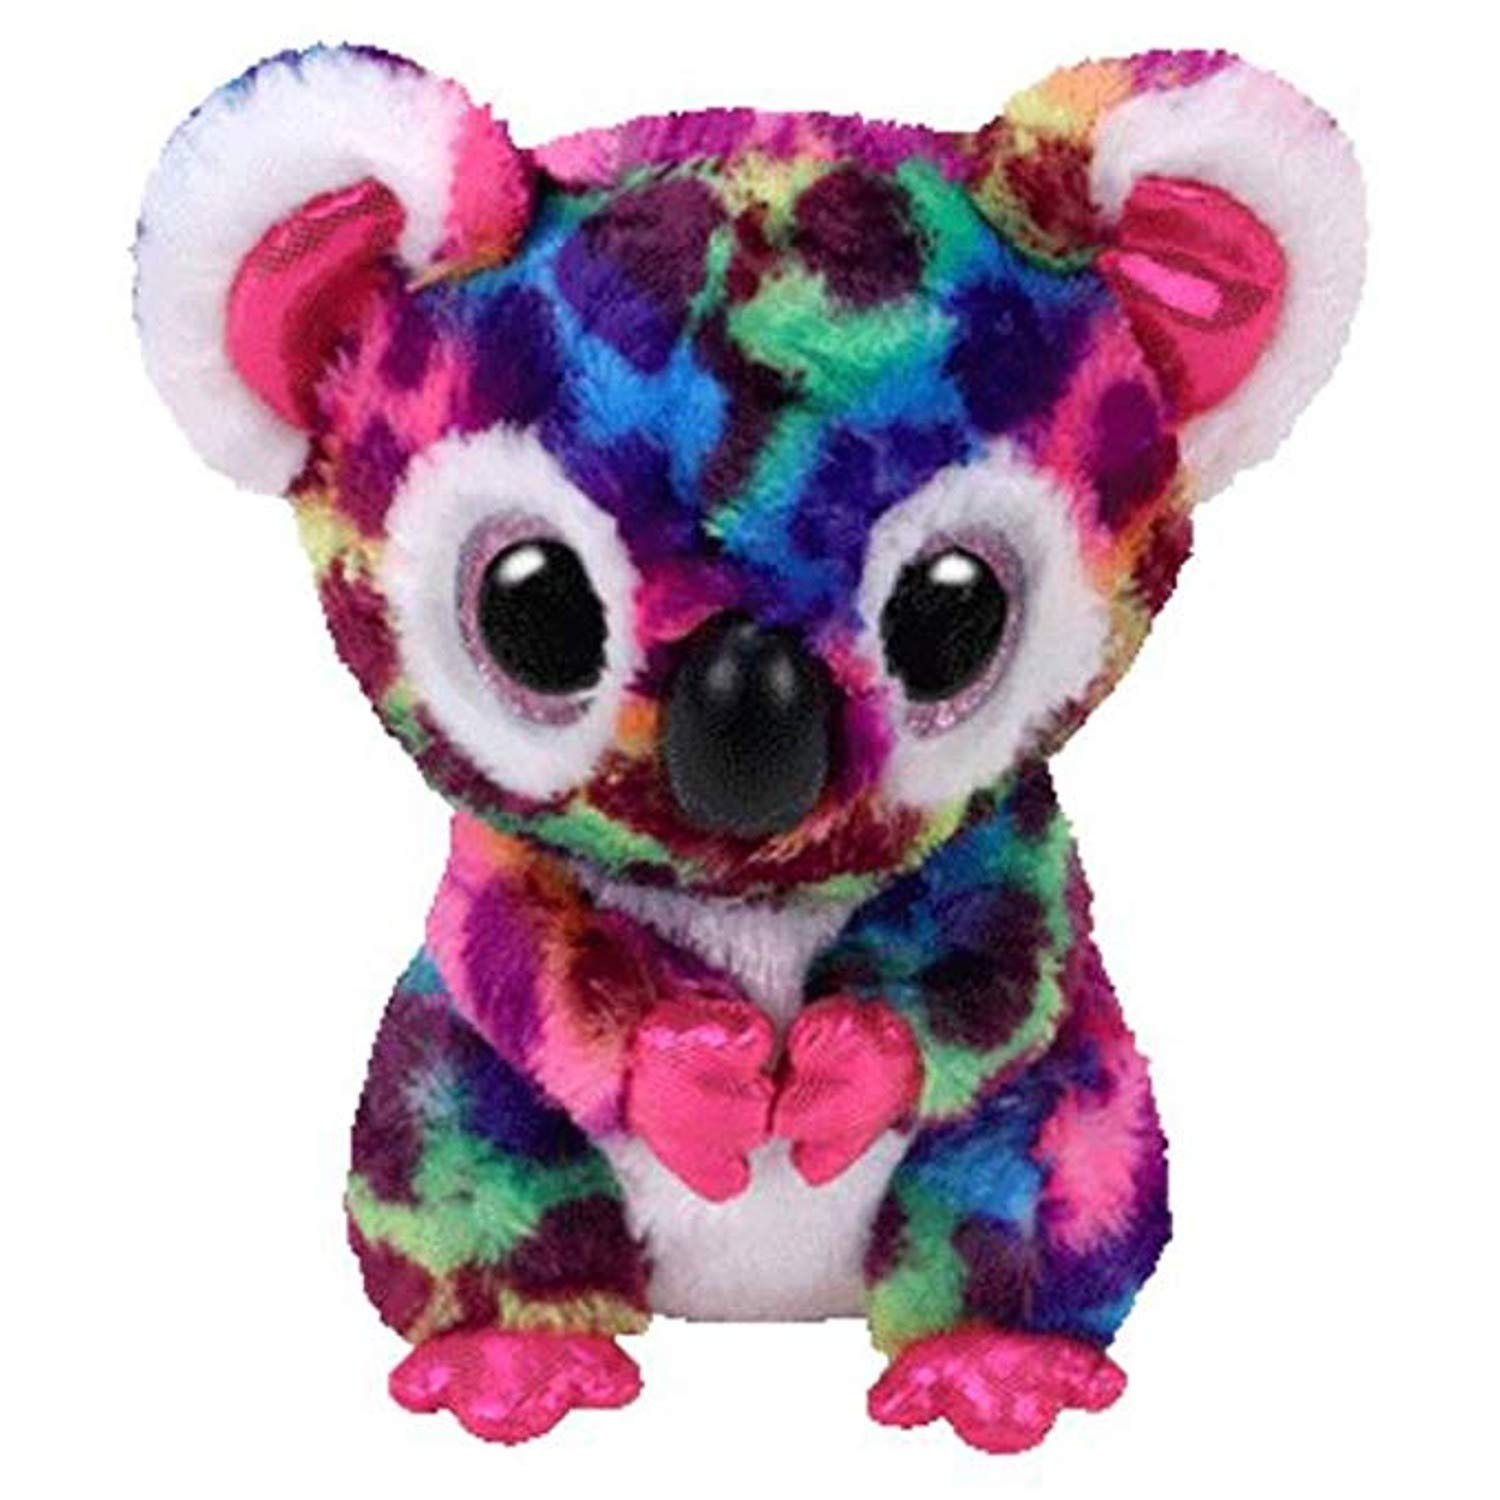 ... Saffire The Dragon, Bat ,Dangler, Cow, Dog - Plush Regular Soft Big-Eyed Stuffed Animal Collection Doll Toy (6